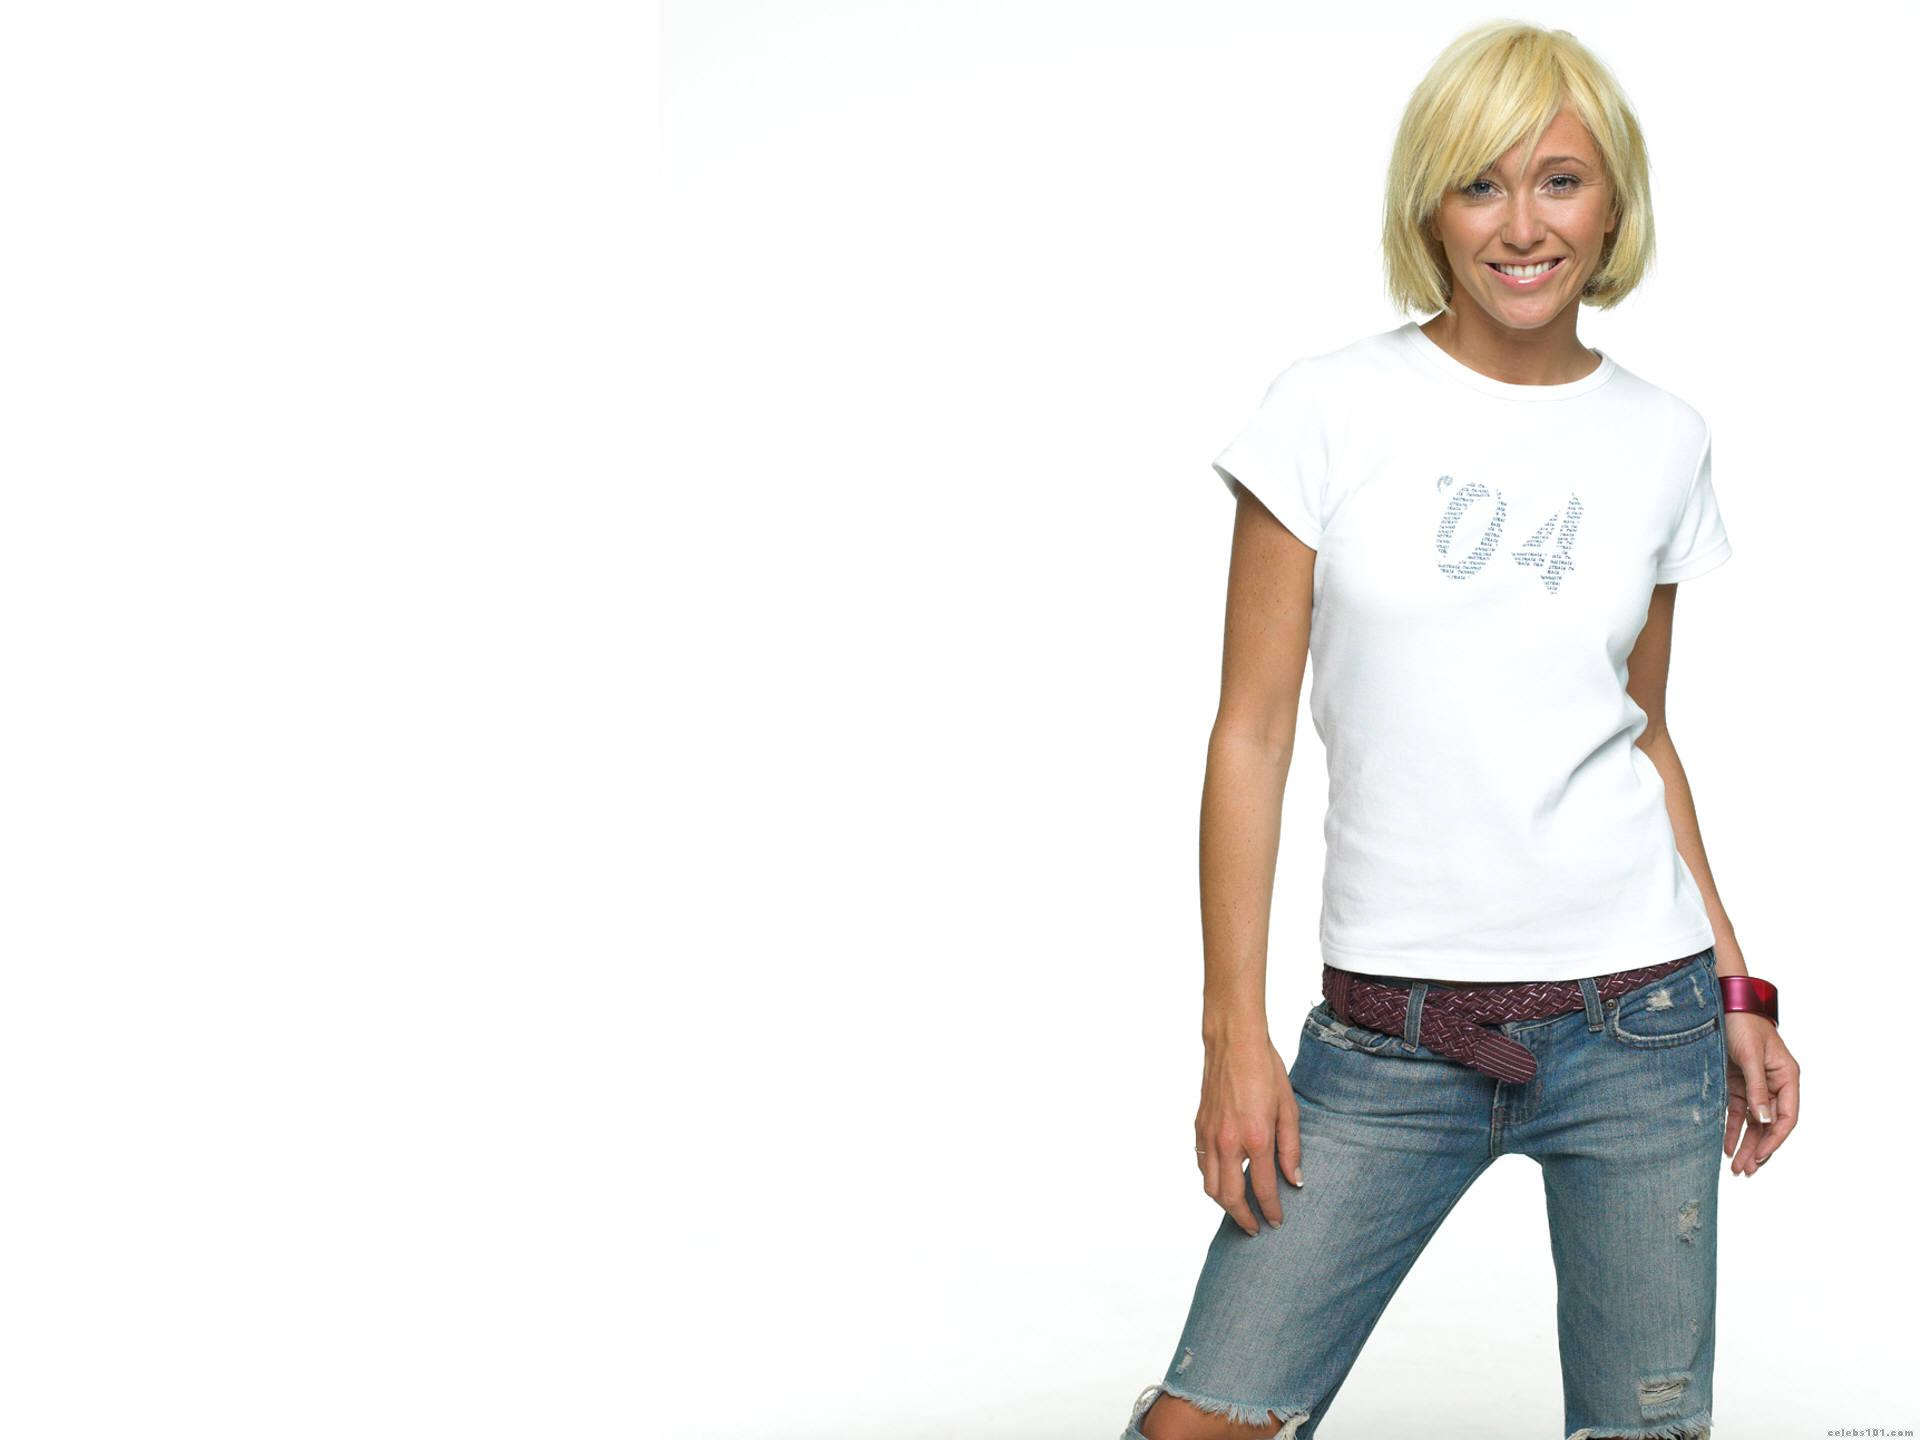 Frost High quality wallpaper size 1920x1440 of Jenny Frost Wallpaper 1920x1440